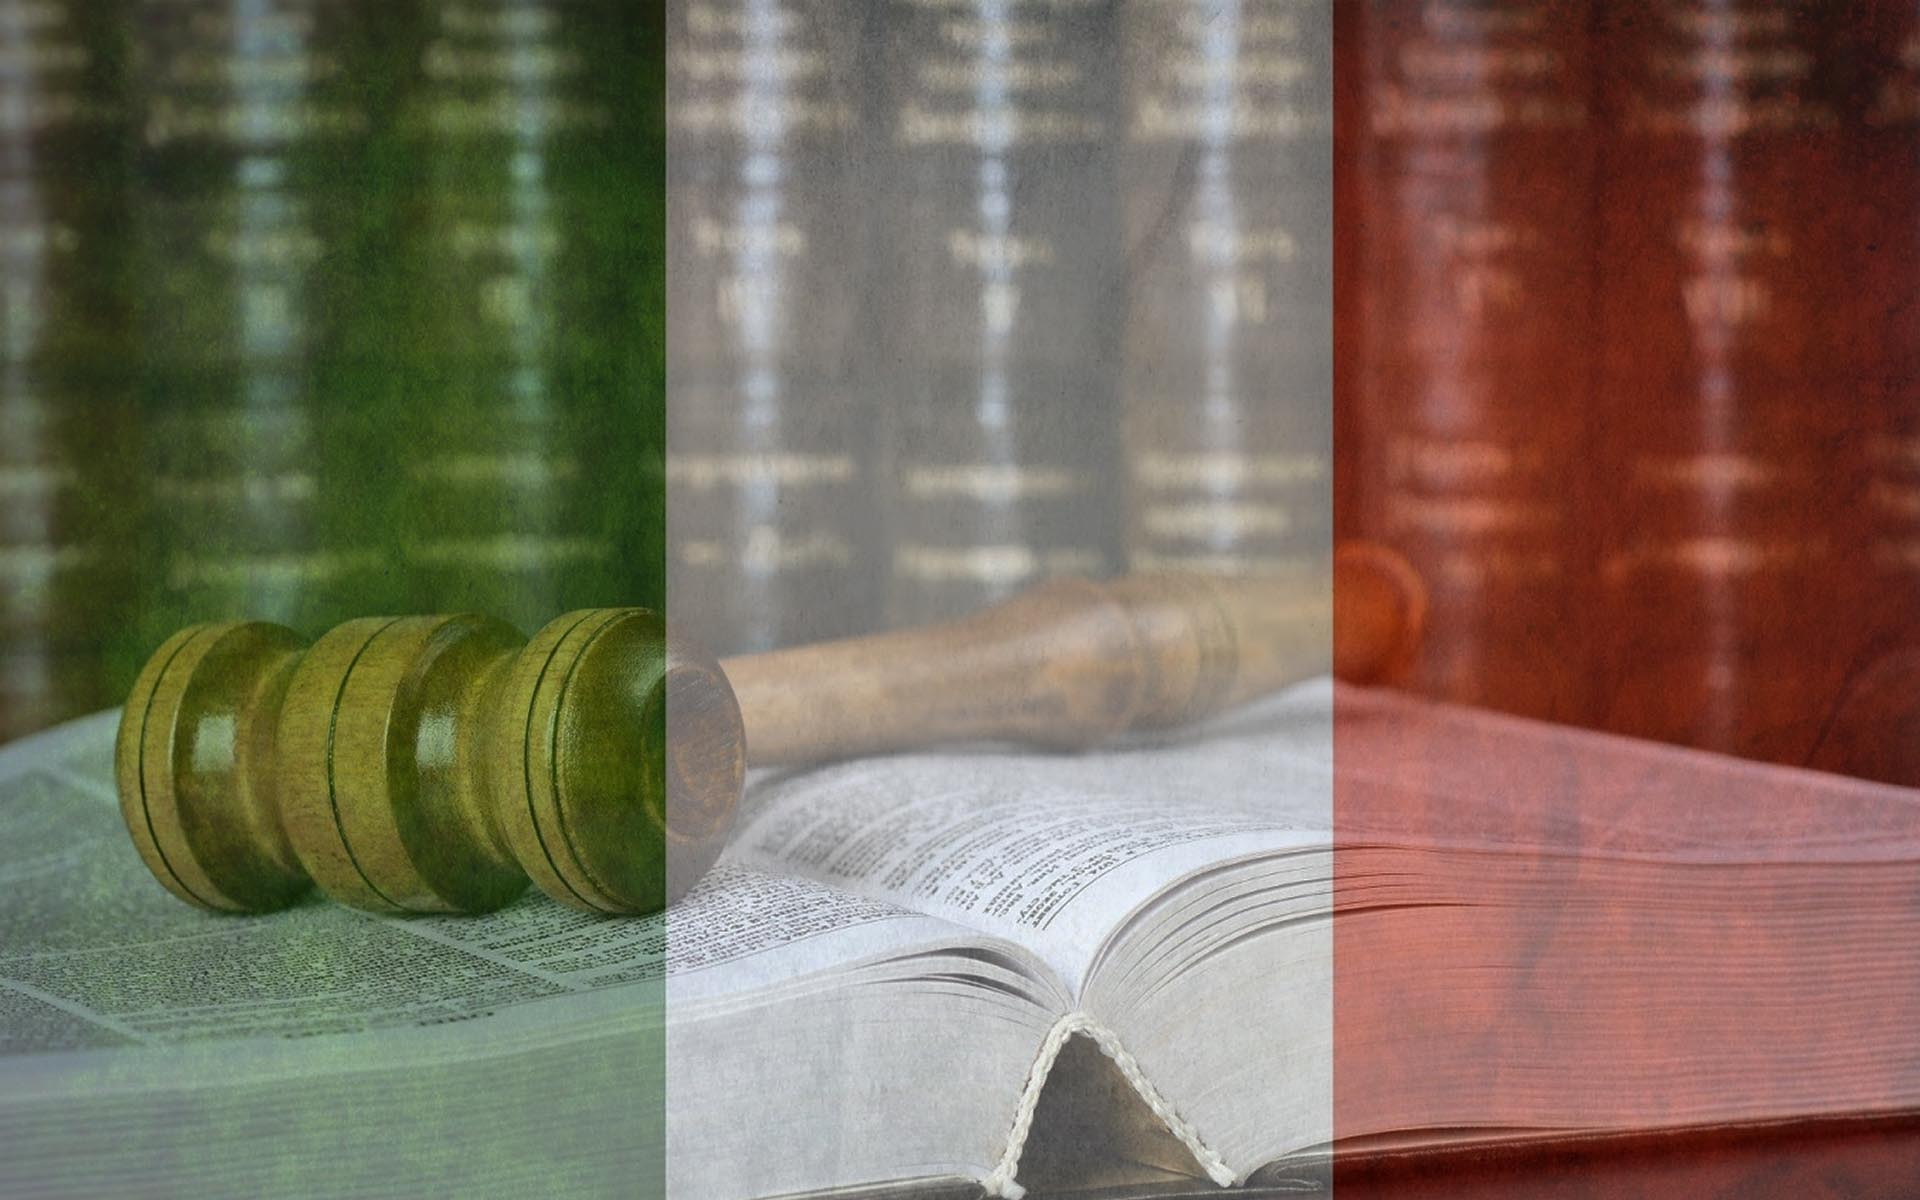 Italy Takes Labels OneCoin a Ponzi Scheme, Levies €2.5 Million Fine